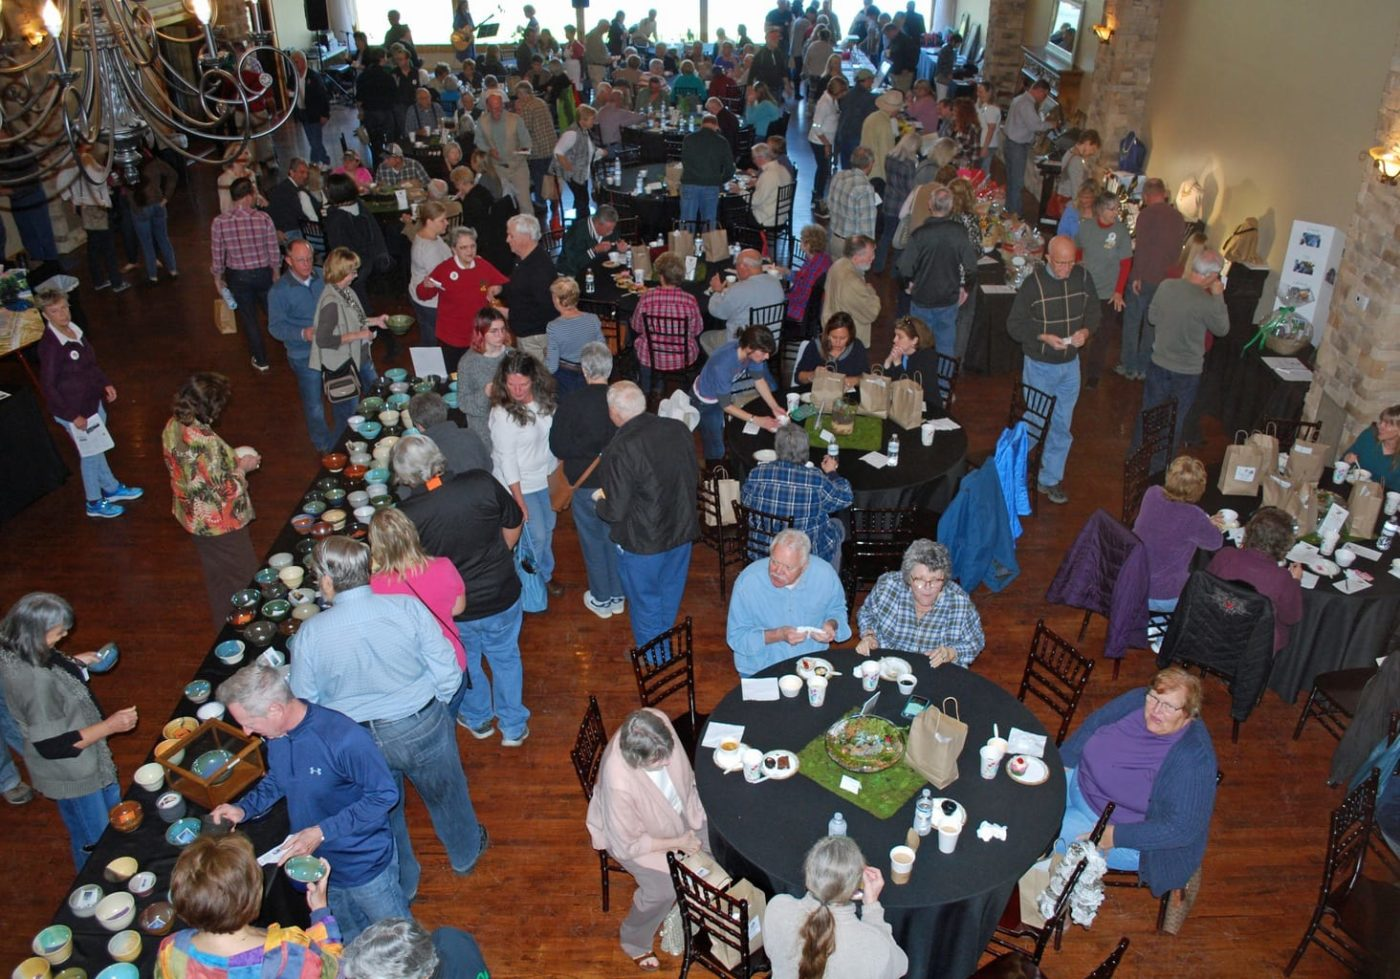 An overhead view of the crowd at Willow Creek Falls for Bowls of Hope.